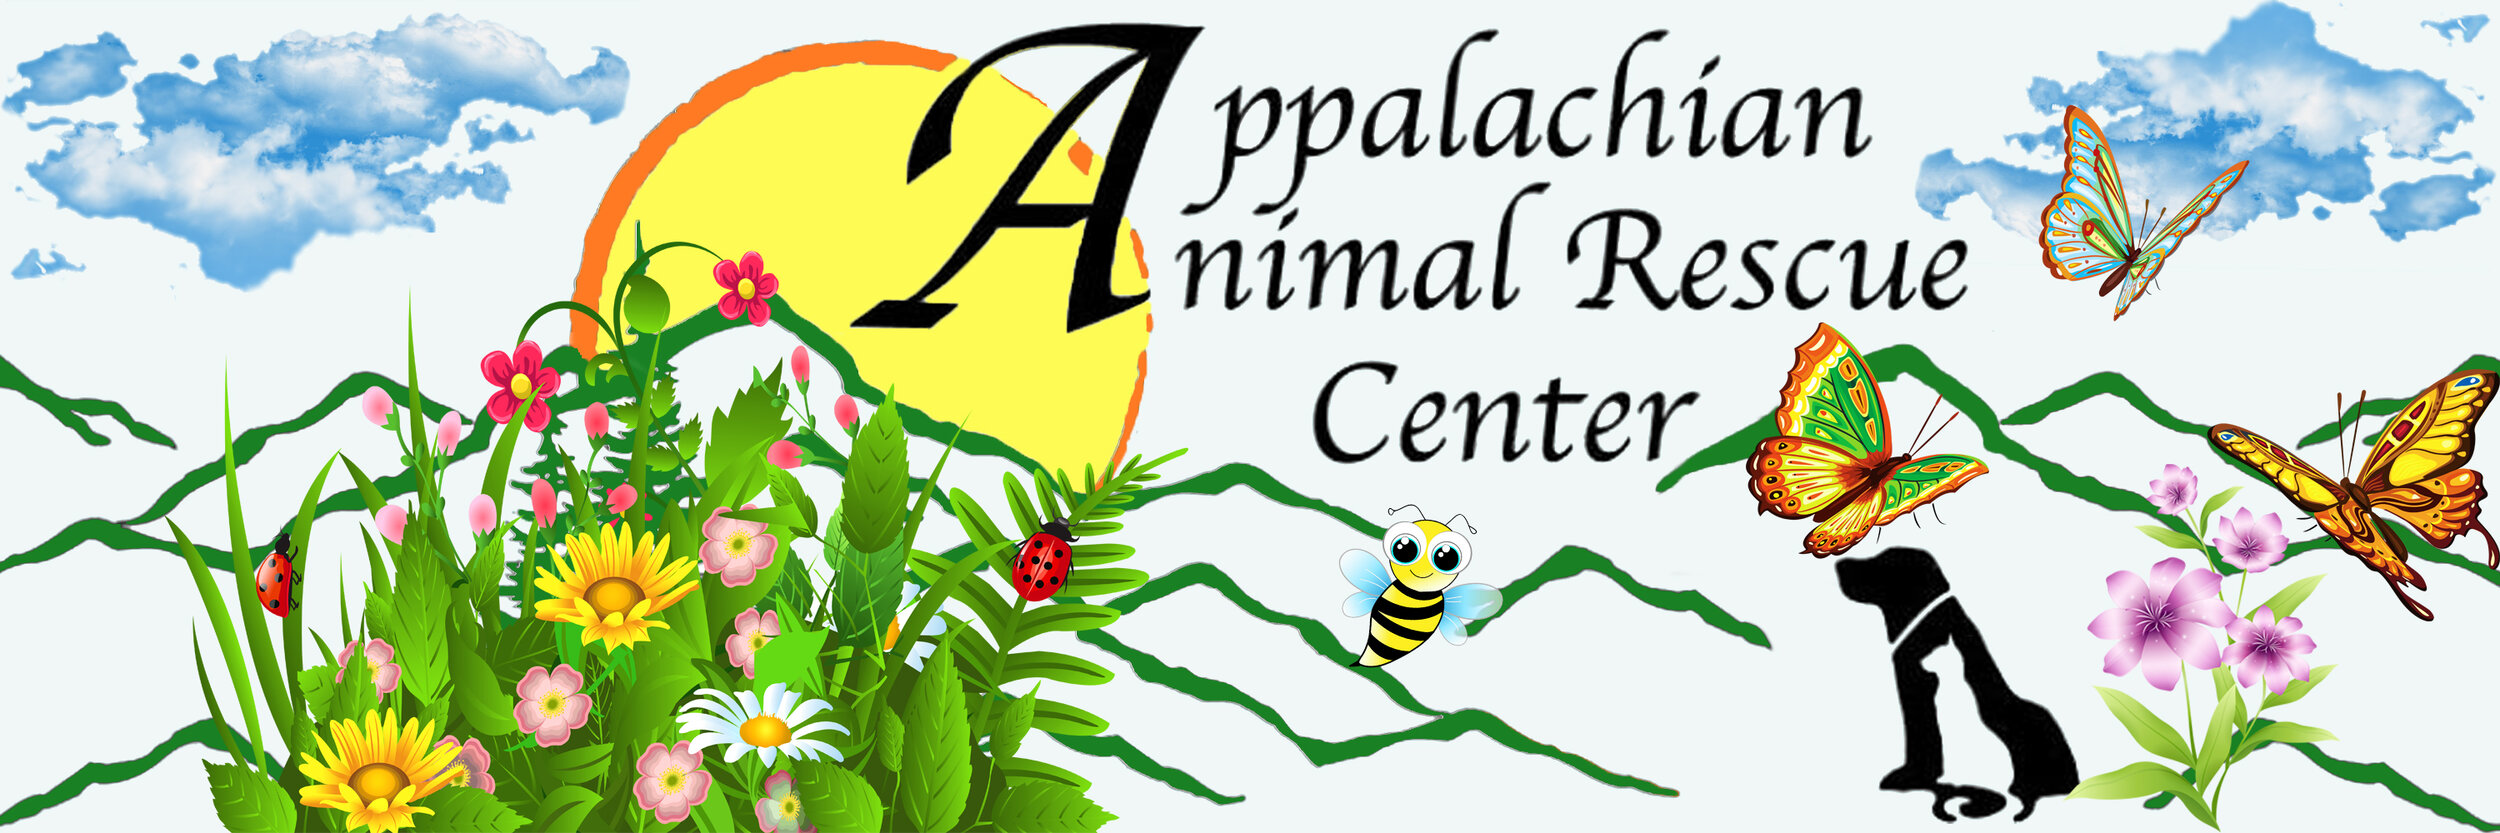 100% of proceeds from the pet costume contest goes to Appalachian Animal Rescue Center